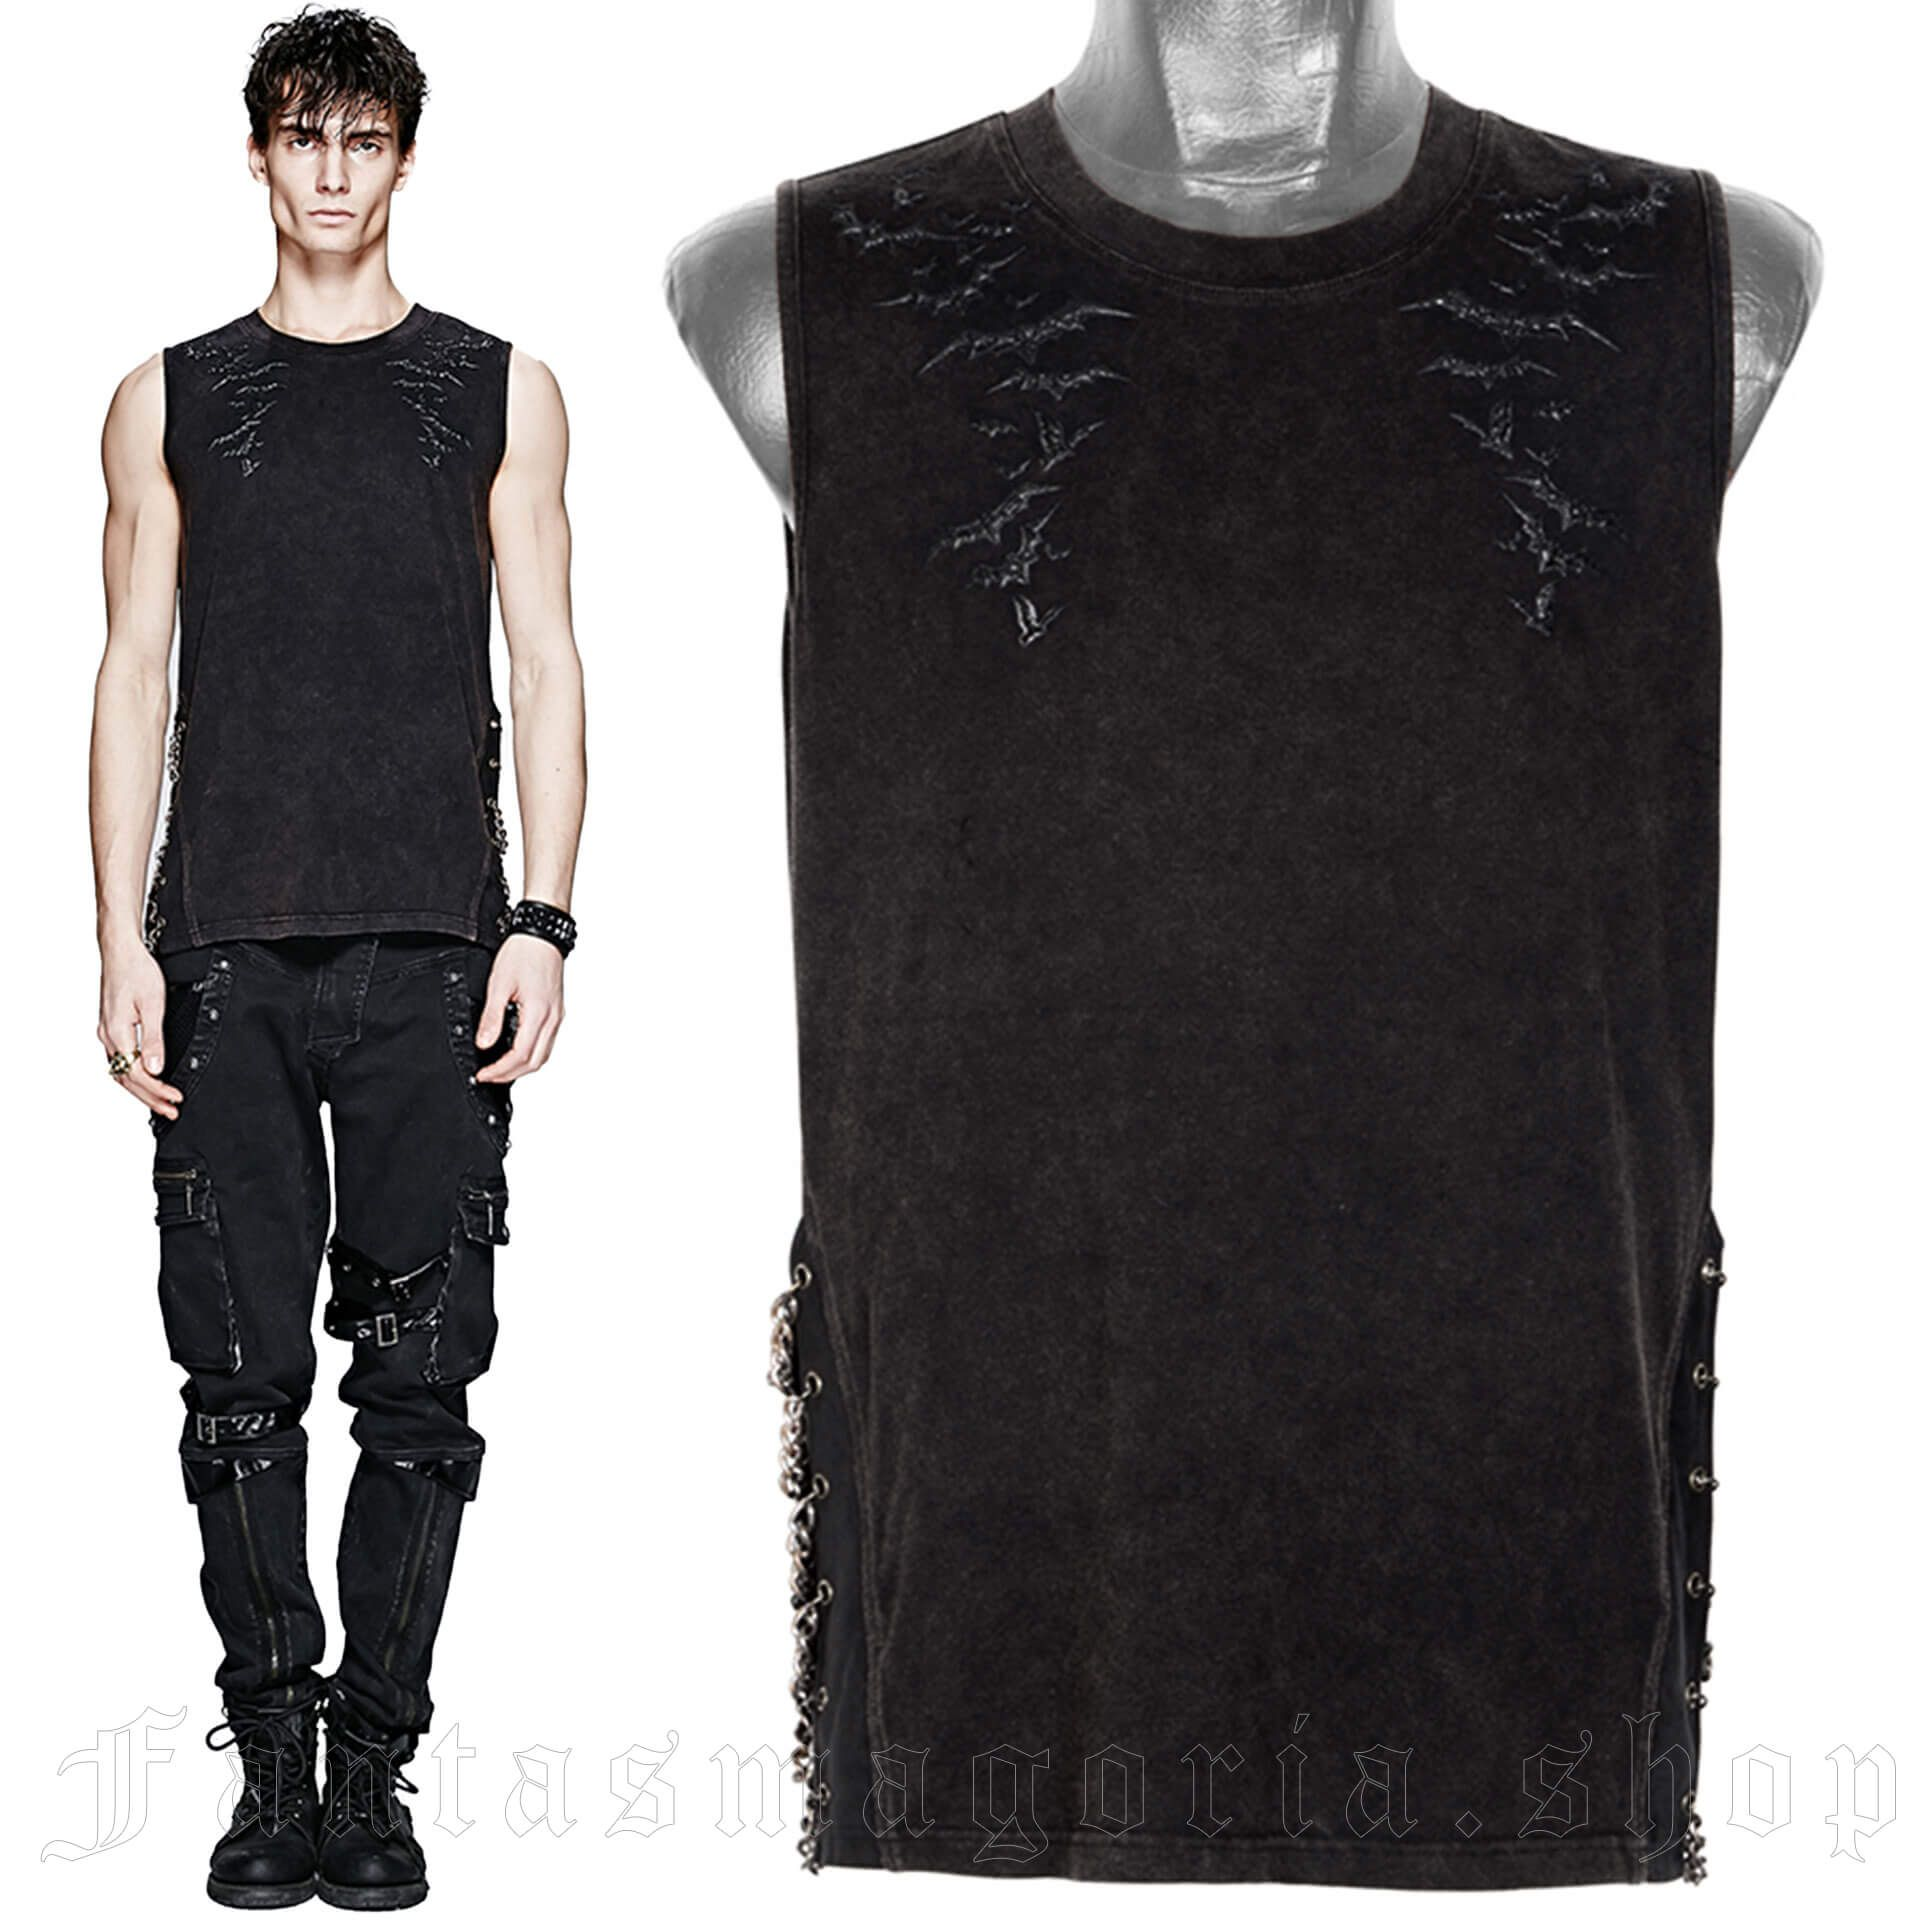 men's The Bats Top by PUNK RAVE brand, code: T-392